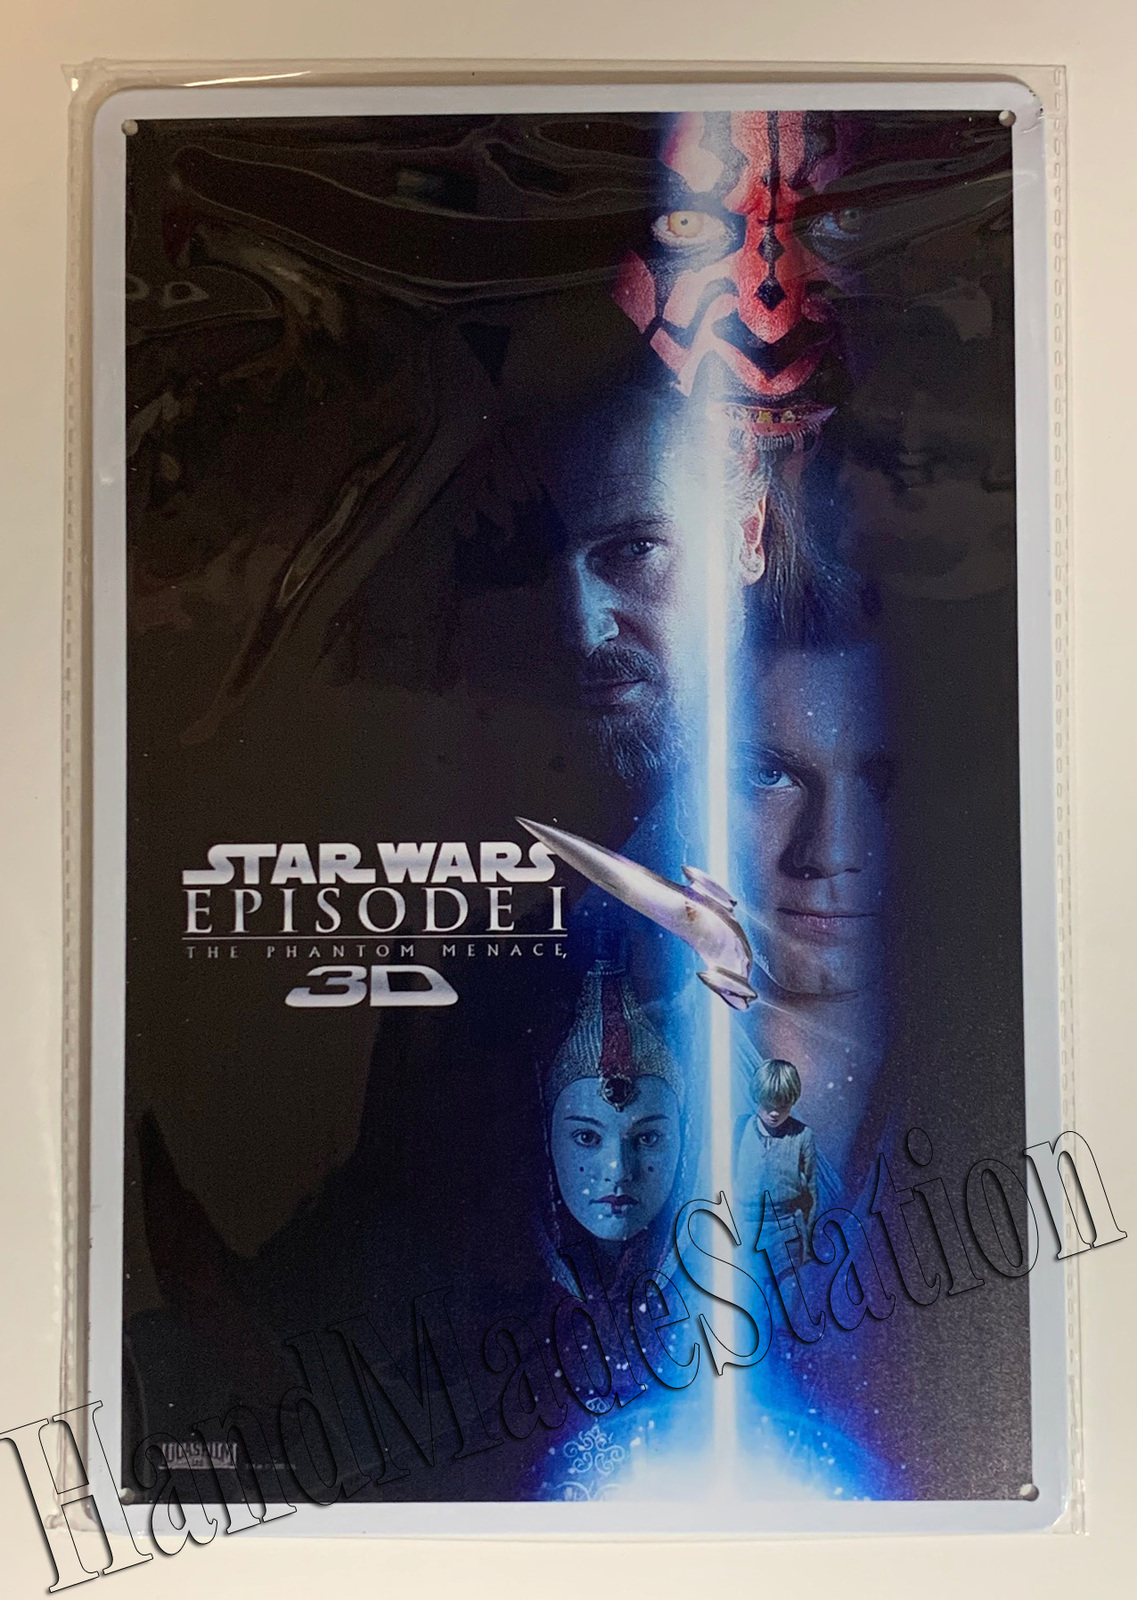 "Star Wars Episode I movie poster Wall Metal Sign plate Home decor 11.75"" x 7.8"""